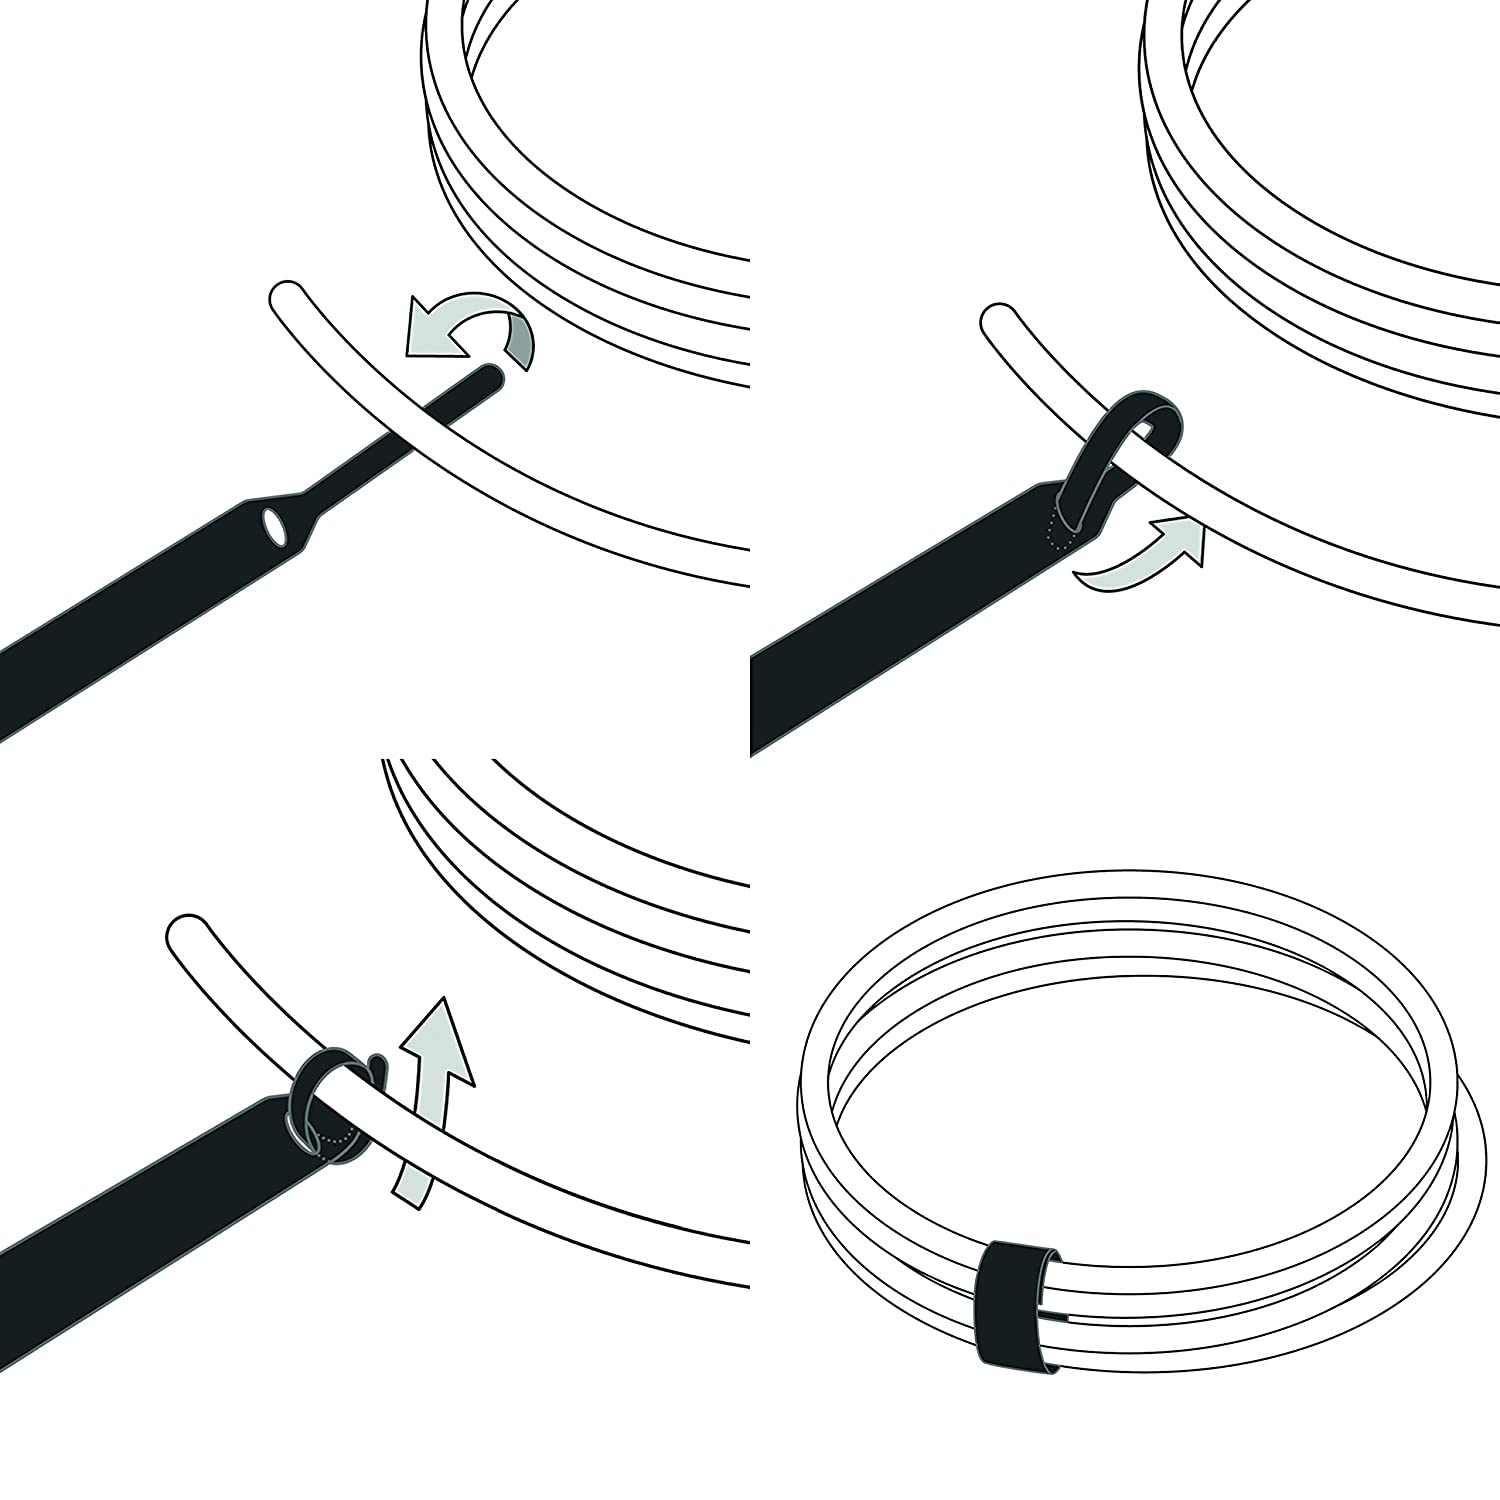 LTC 1110 10 PCS Re-Useable Hook and Loop Cable Tidy// Cord Organizer// Cable Clamp// Wire Management// Wire Ties// Cable Wrap// L: 17cm// LTC BASIC STRAPS Label-the-cable Cable Management Ties Black